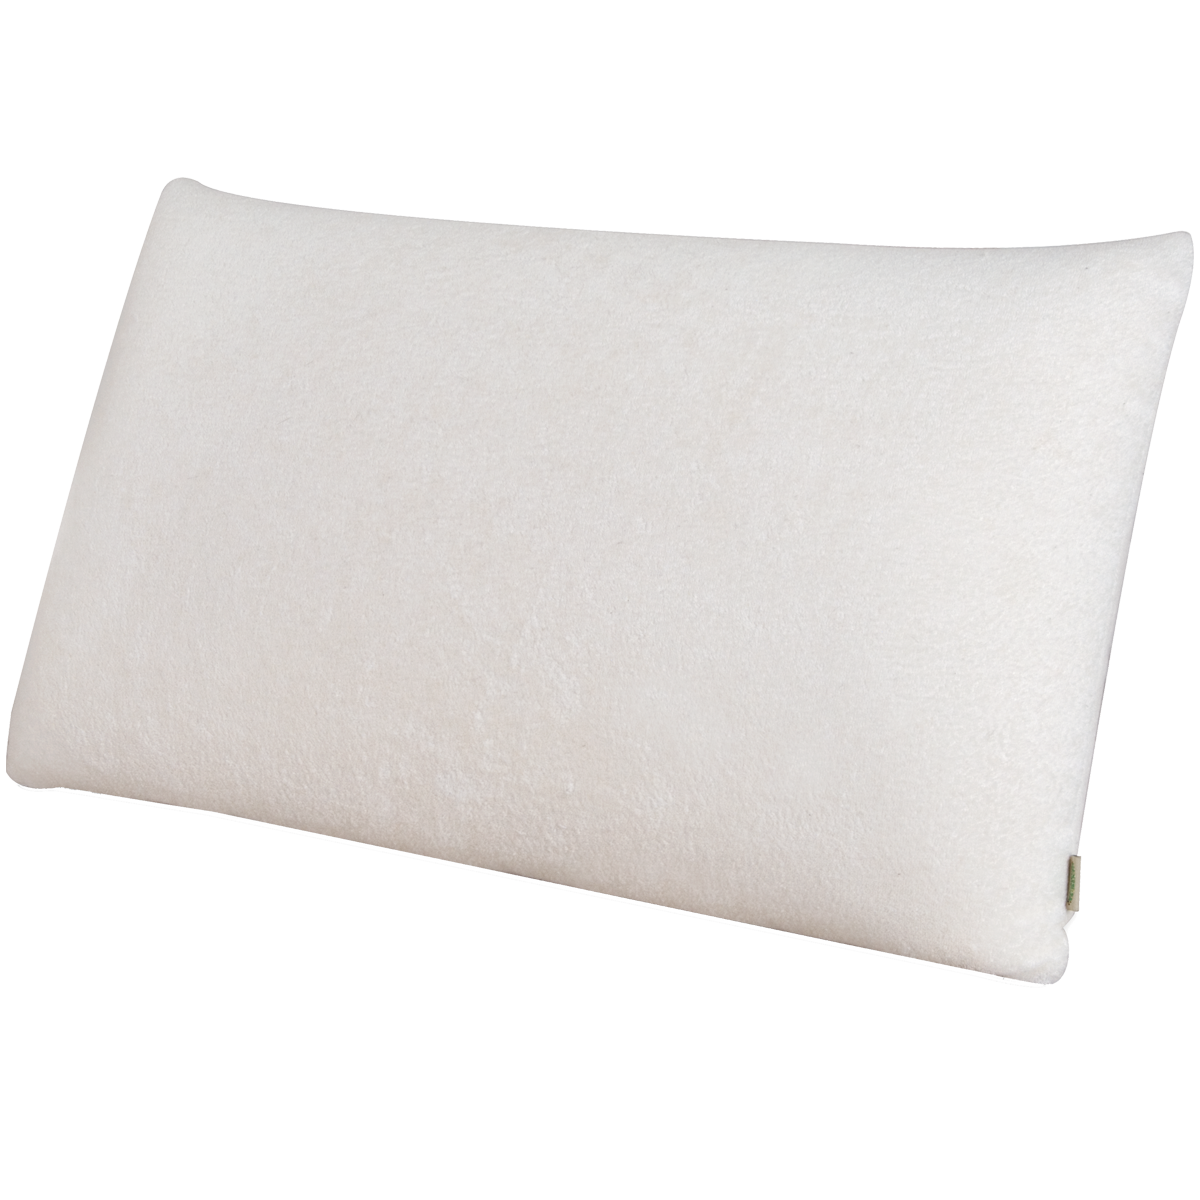 Bed, Blanket, Pillows Png image #28443